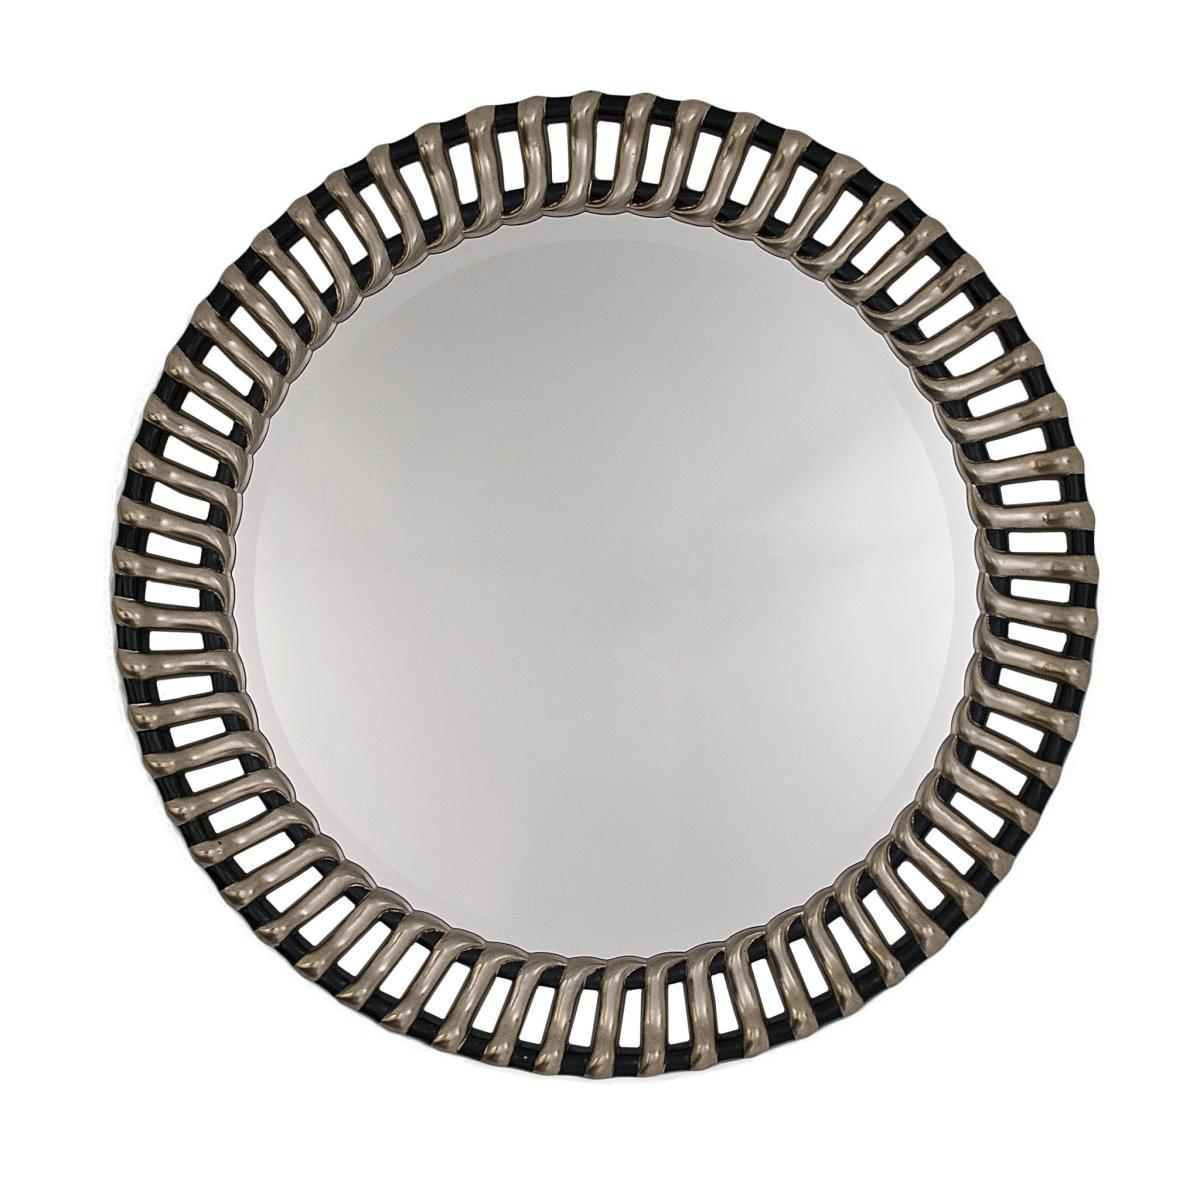 Round Ribbed Framed Silver And Black Bevelled Wall Mirror With Regard To Round Bevelled Mirror (View 7 of 20)